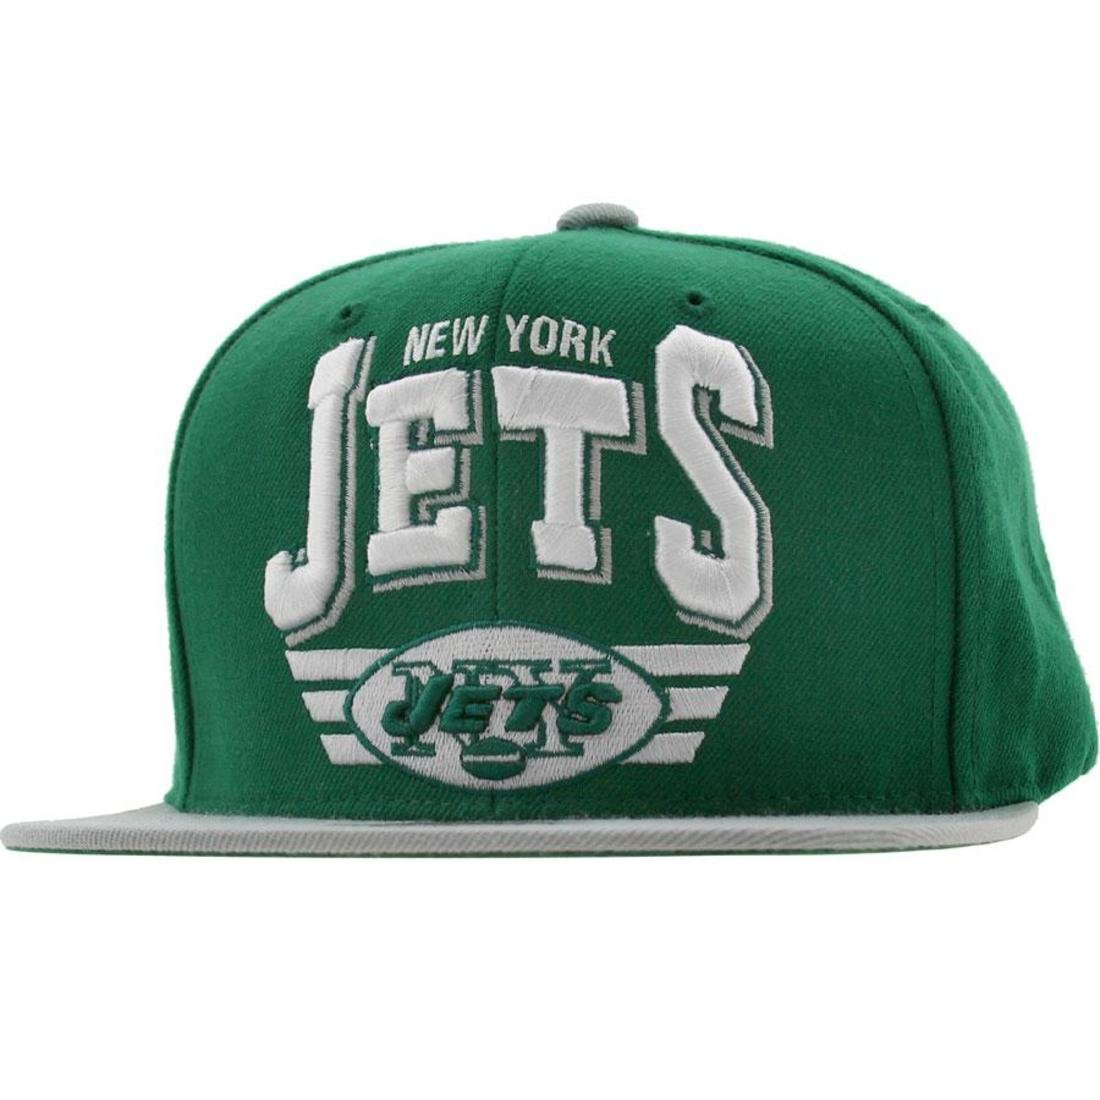 27e83004c9d6d8 Amazon.com: New York Jets The Stadium Arch Vintage Green/Grey Adjustable  Snapback Cap / Hat: Clothing